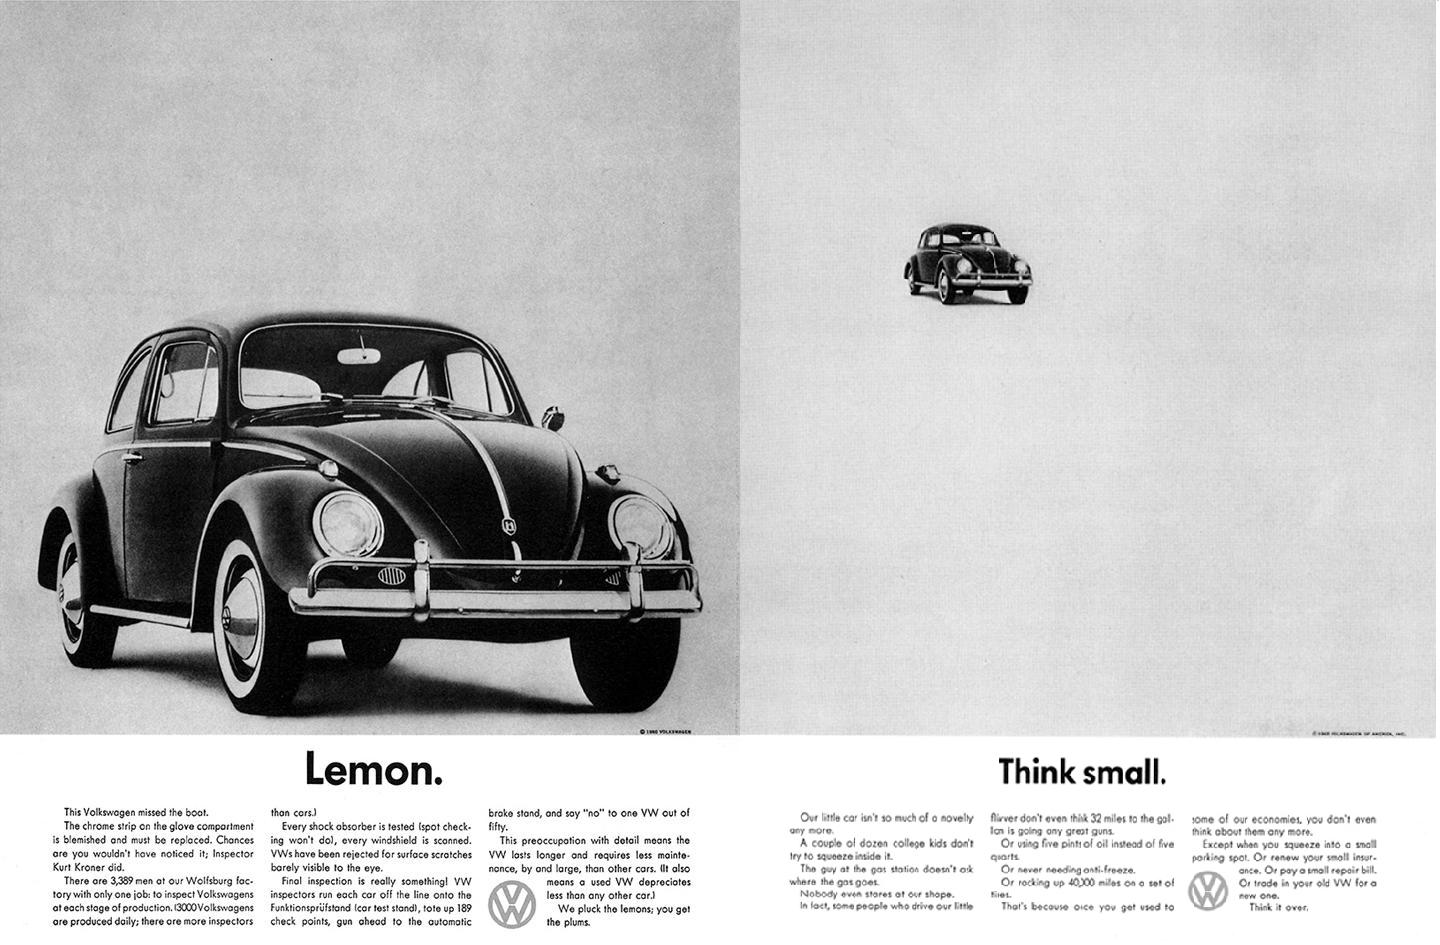 Volkswagen_Think small 03 lemon-and-think-small-ads.jpg